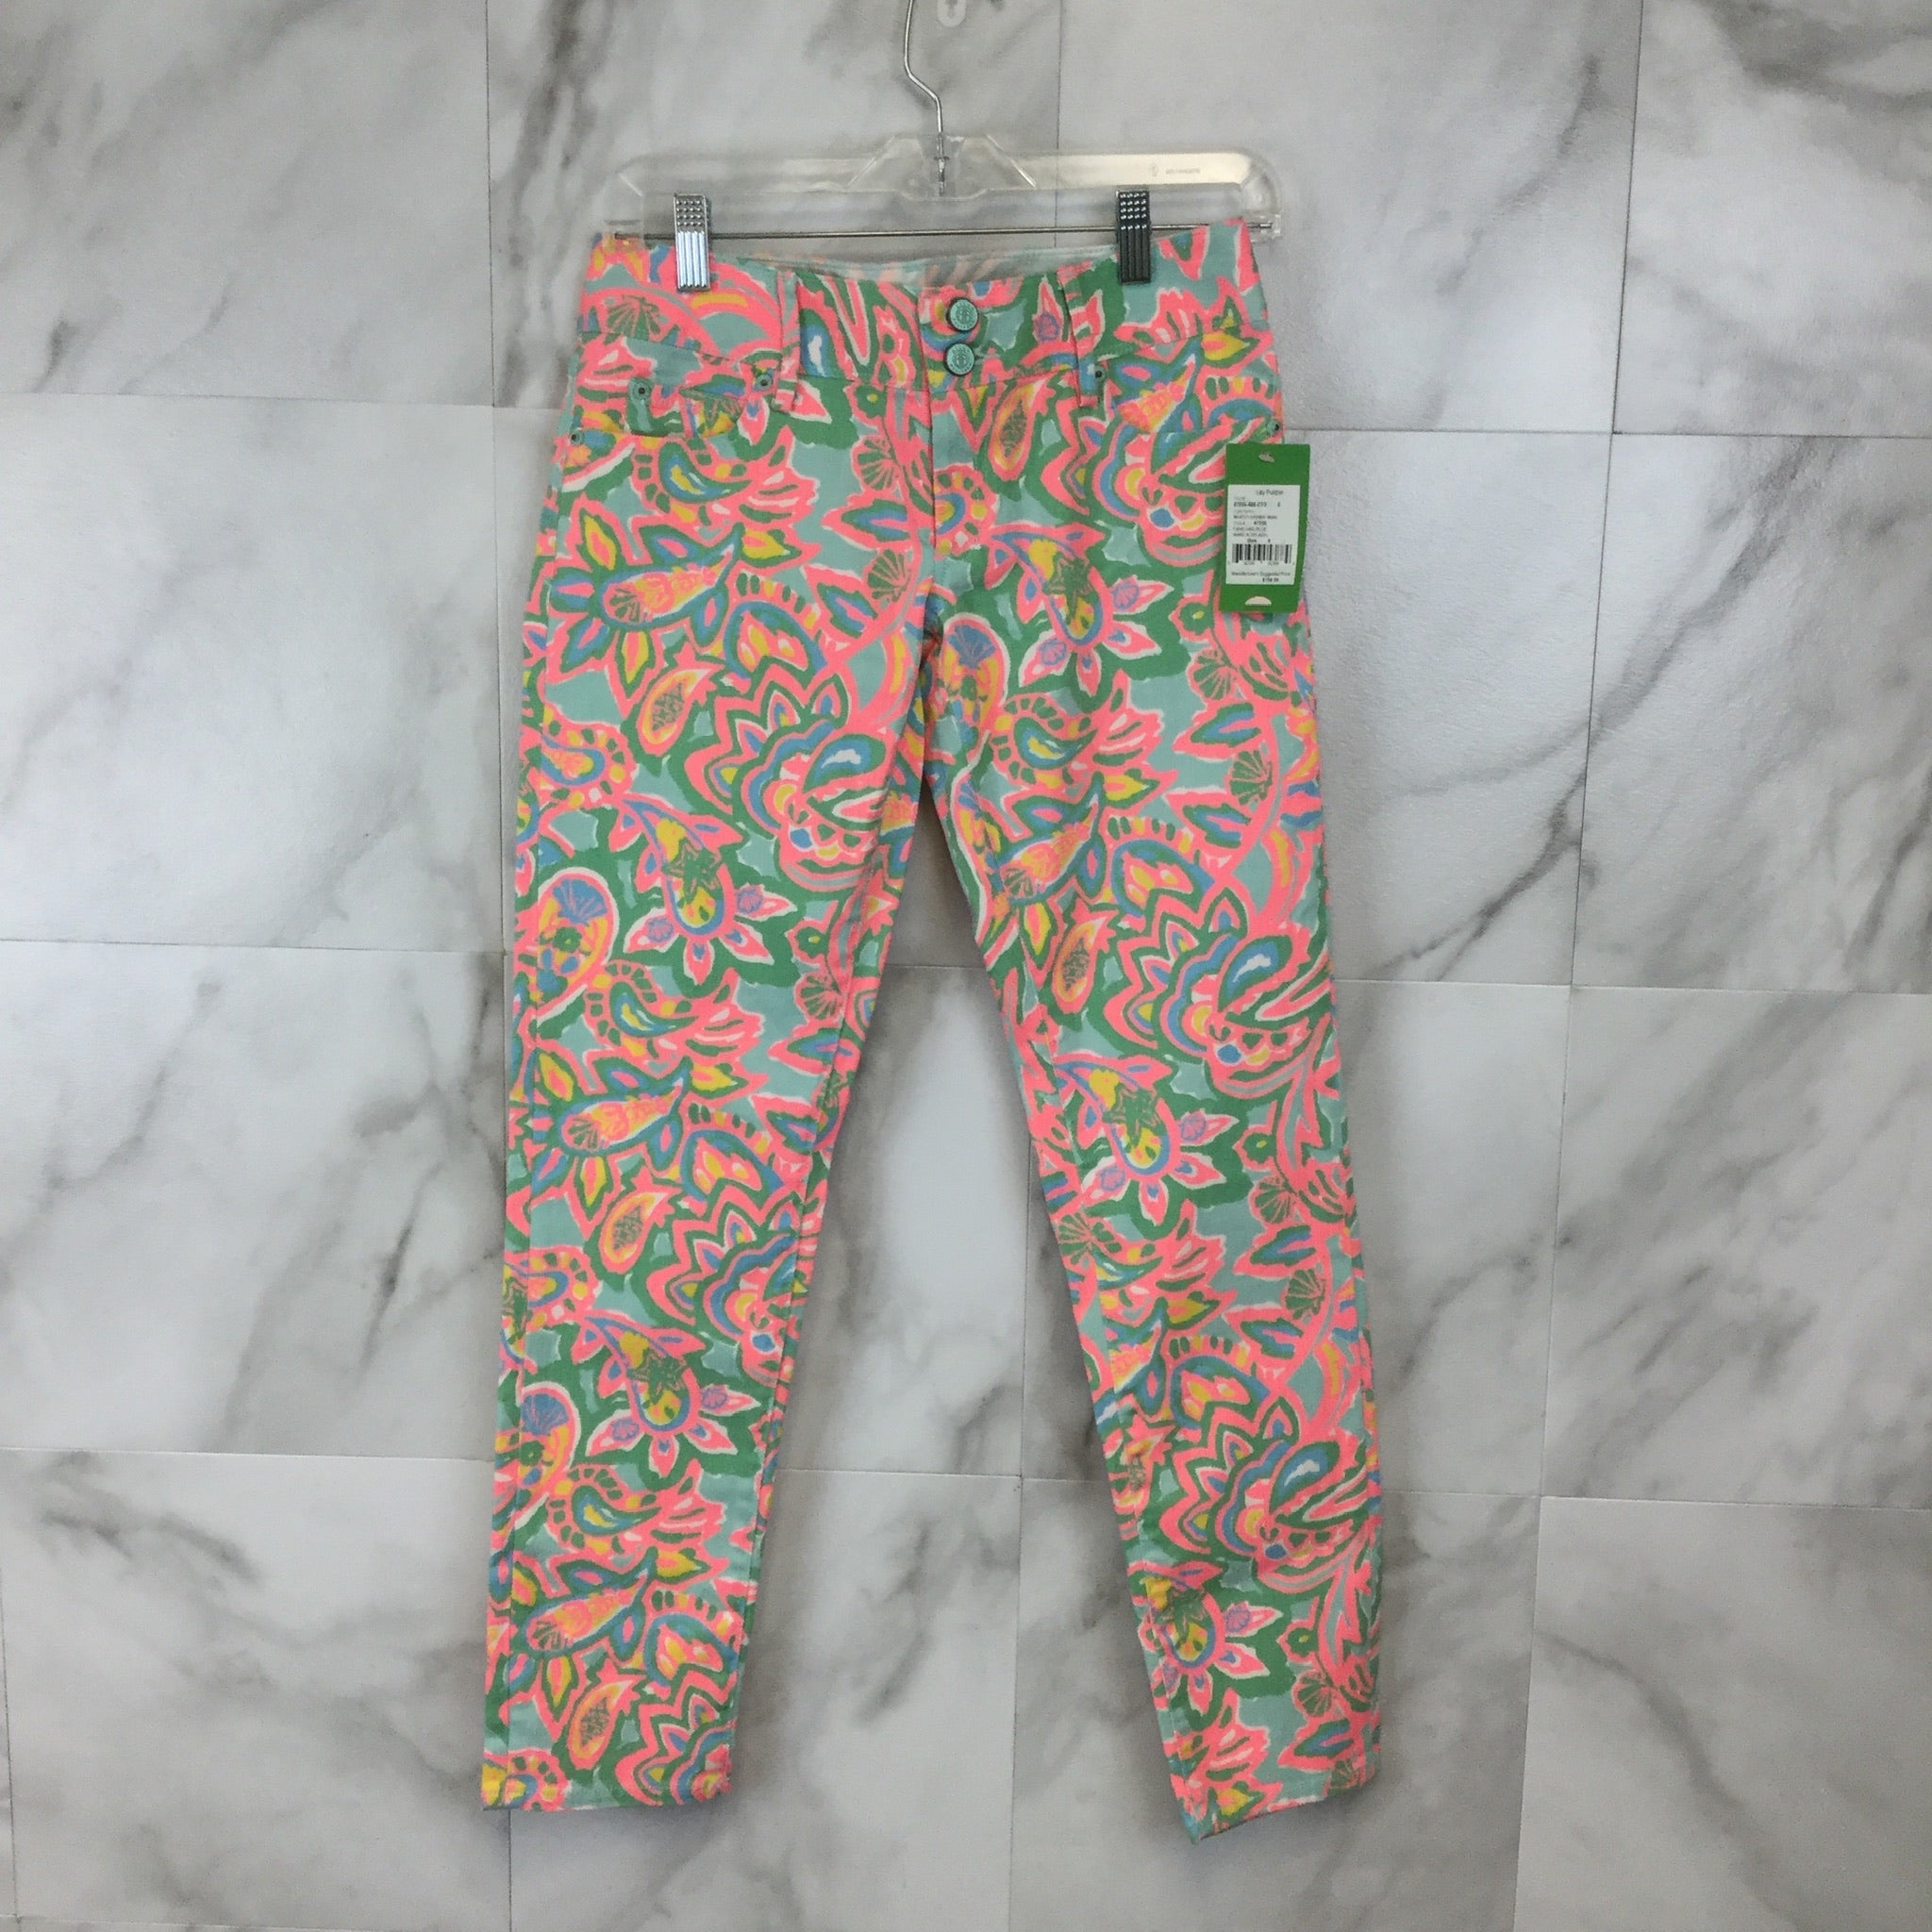 New! Lilly Pulitzer Worth Skinny Mini Jeans - Size 0